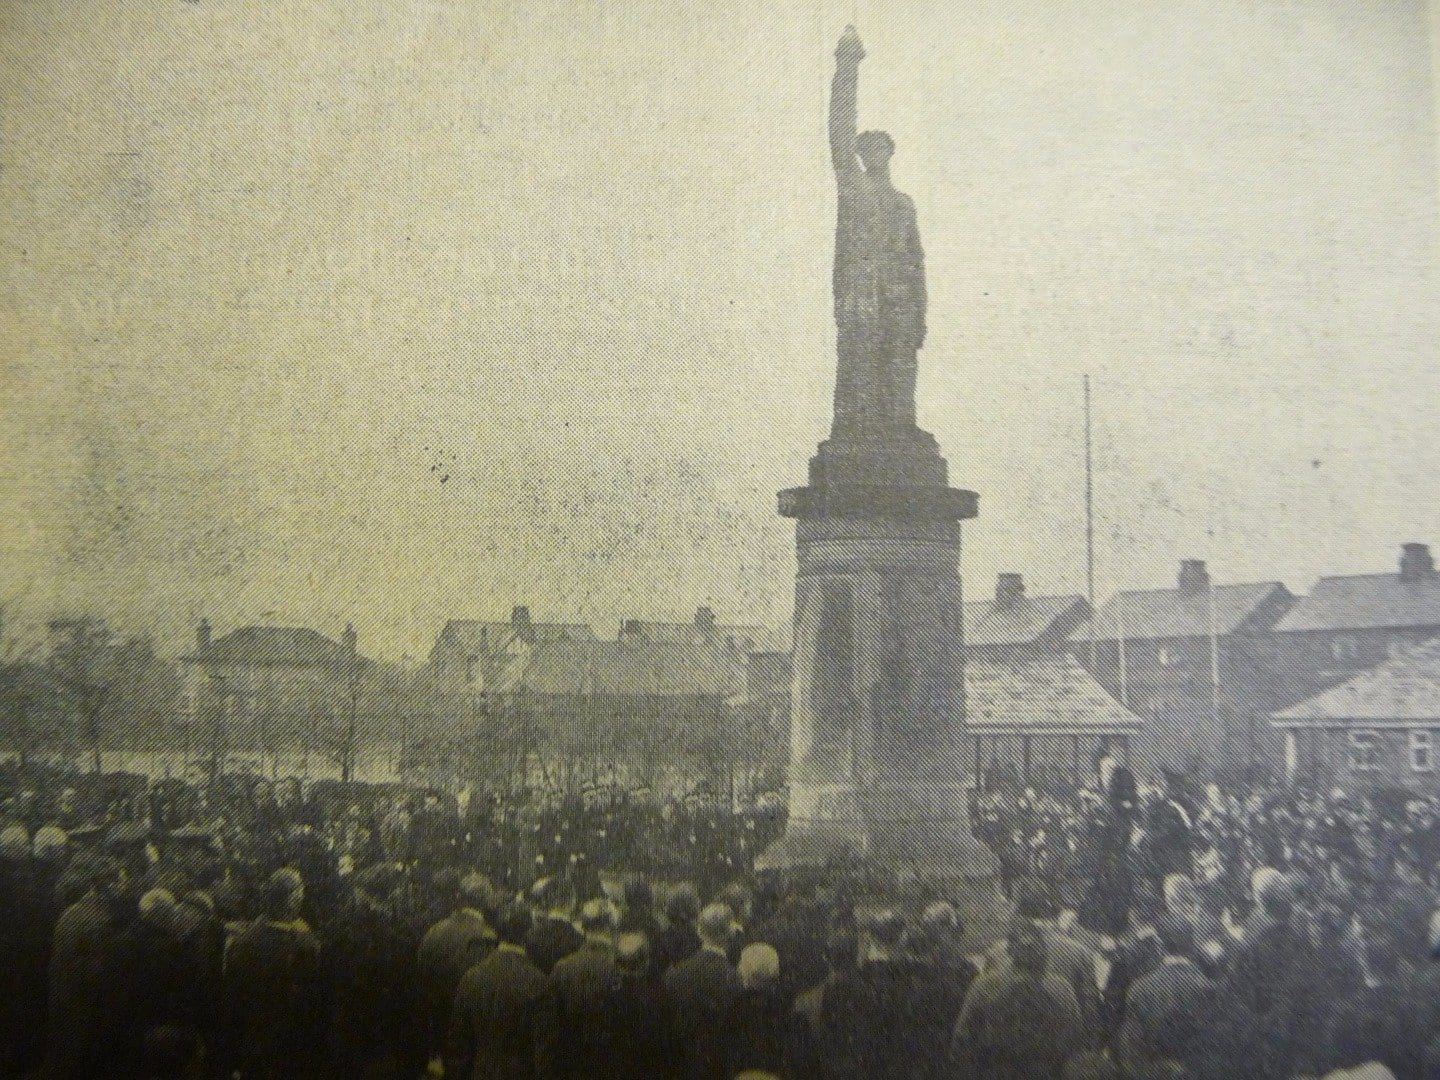 Cenotaph Unveiling in 1925 - Fleetwood Chronicle